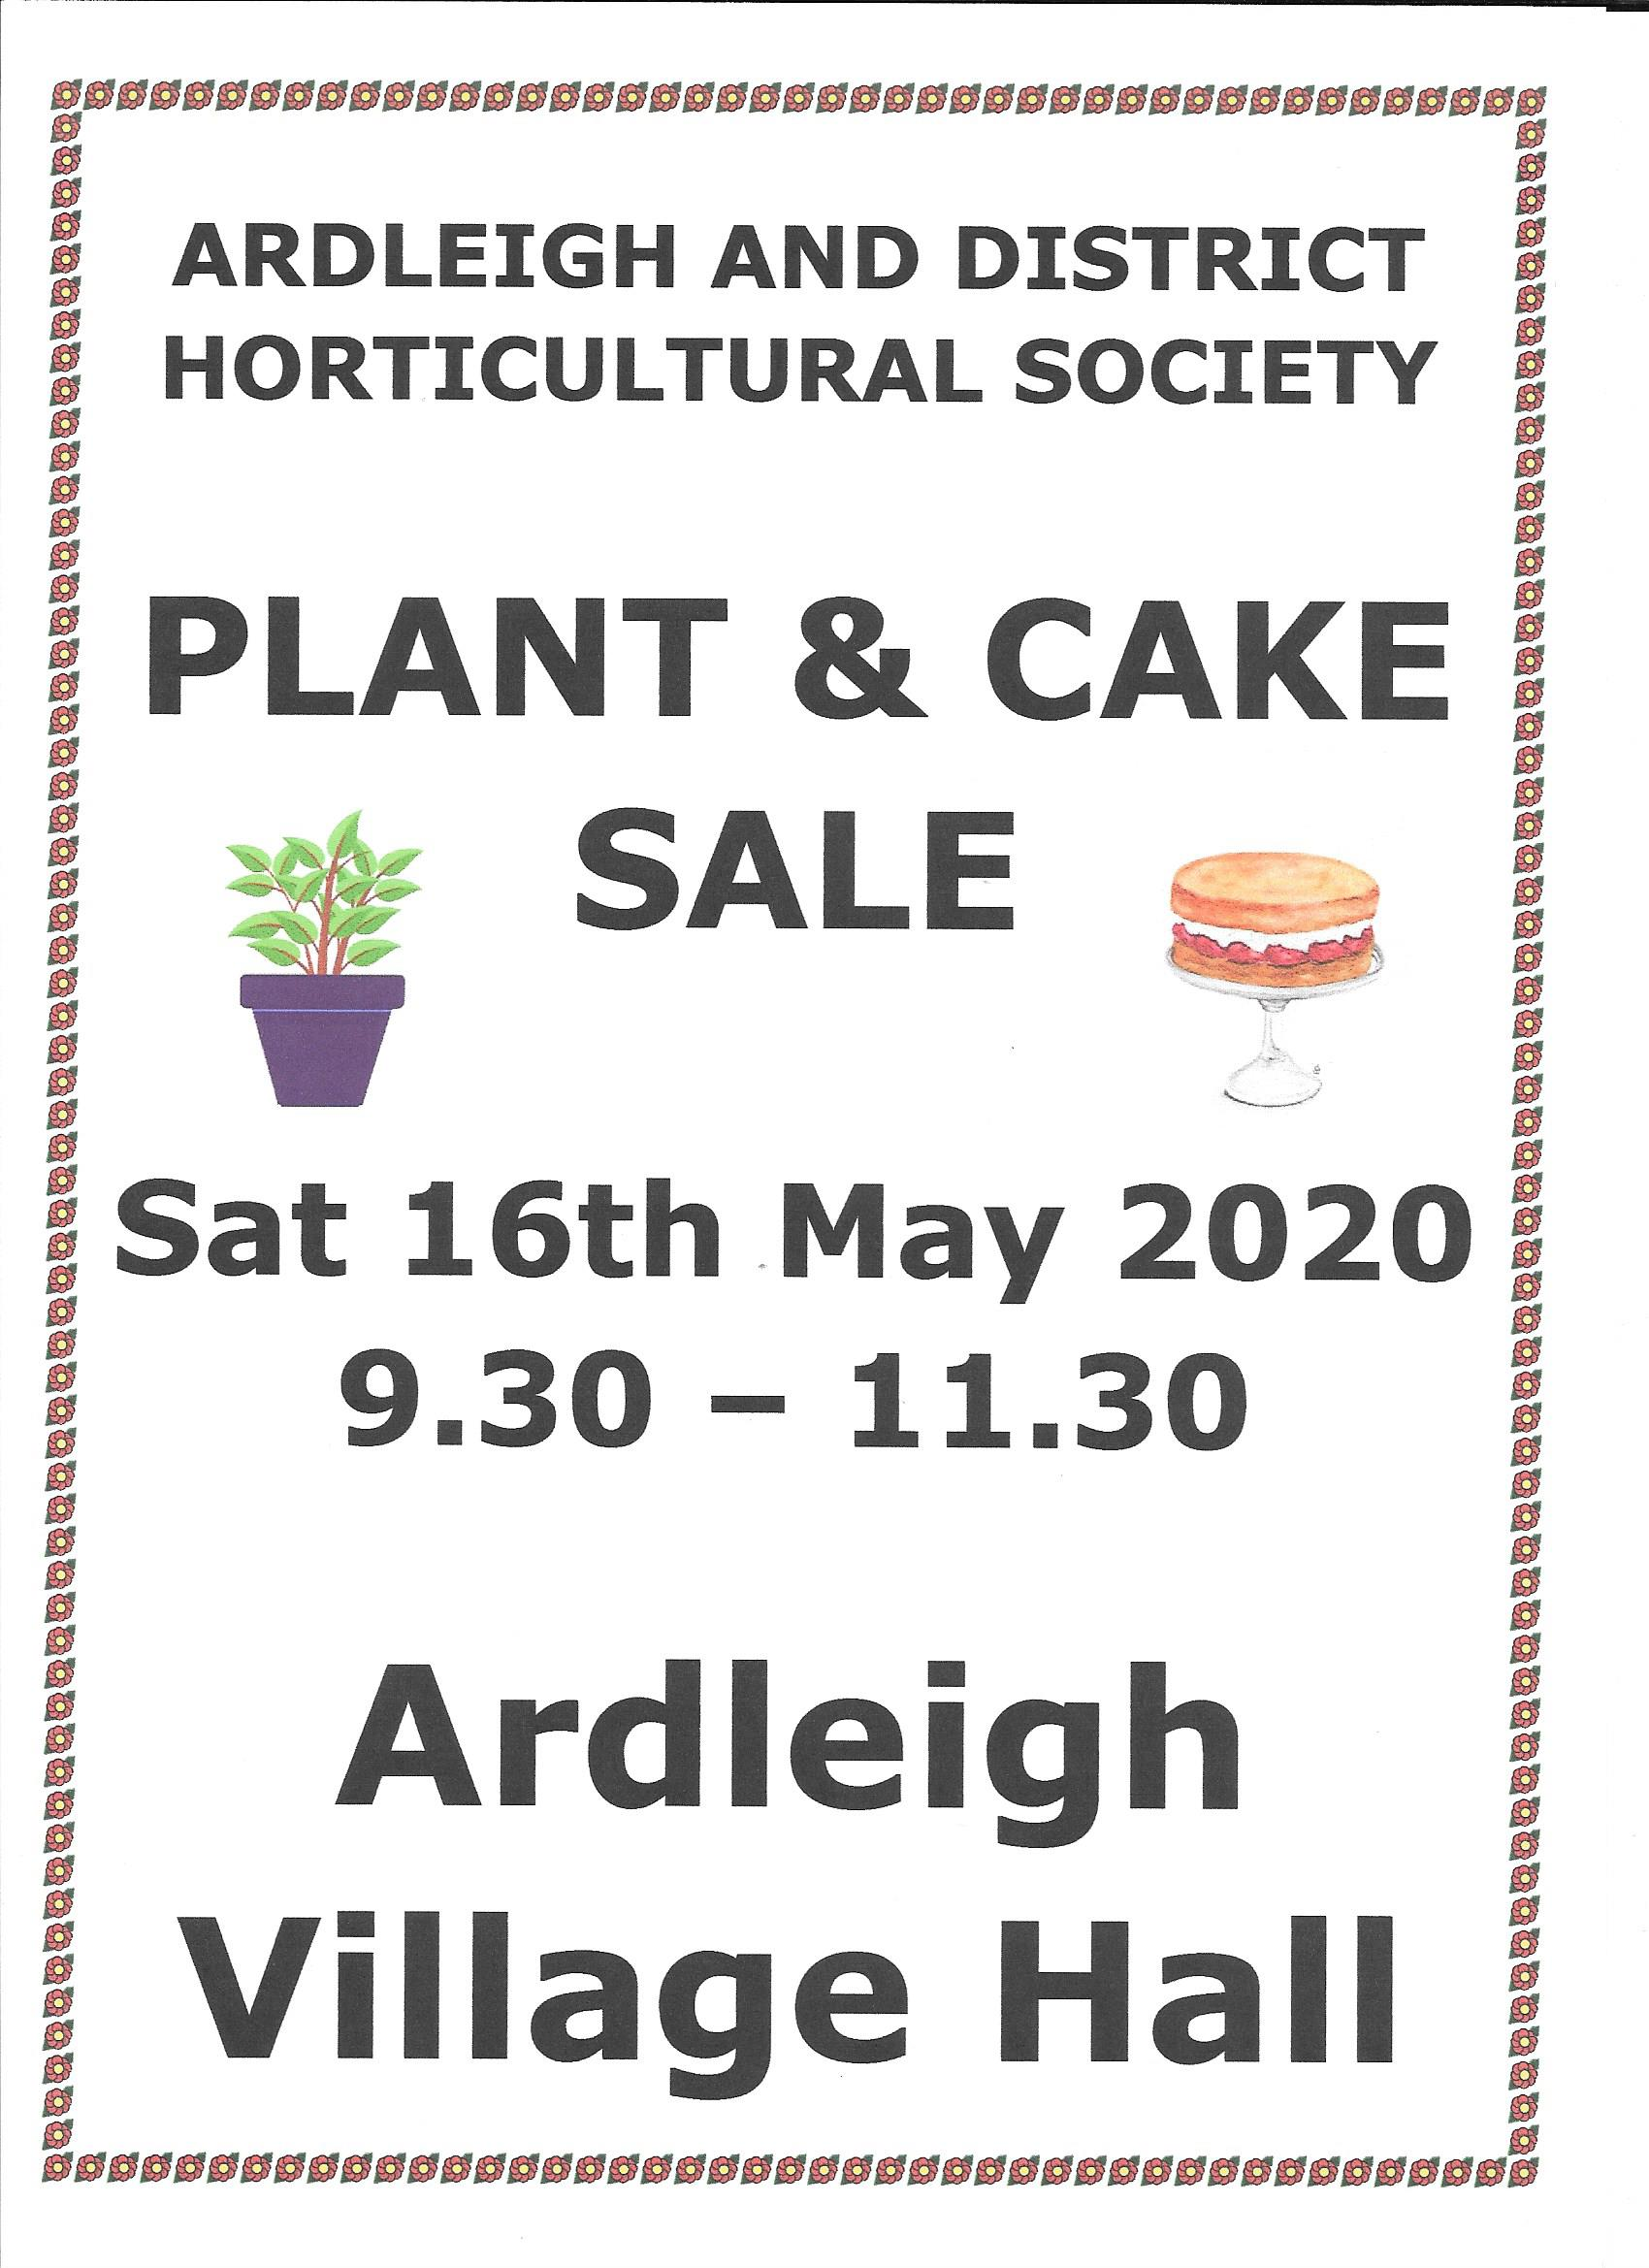 Ardleigh & District Horticultural Society Plant and Cake Sale